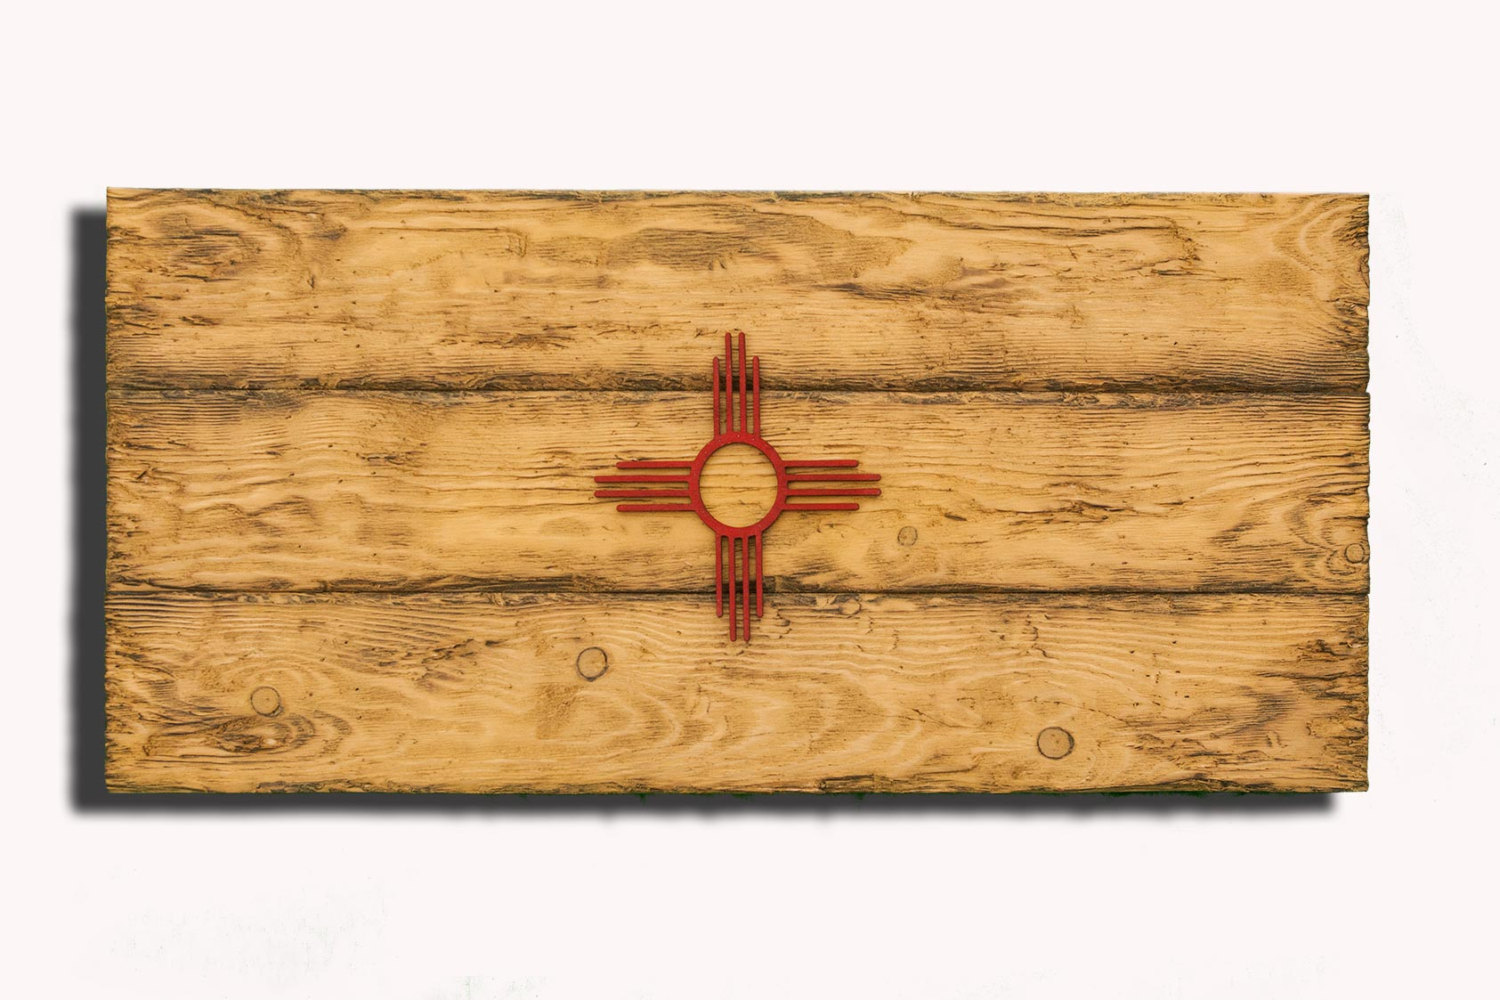 distressed wood wall art tree wooden plank wall new mexico state flag handmade distressed wooden vintage art distressed art